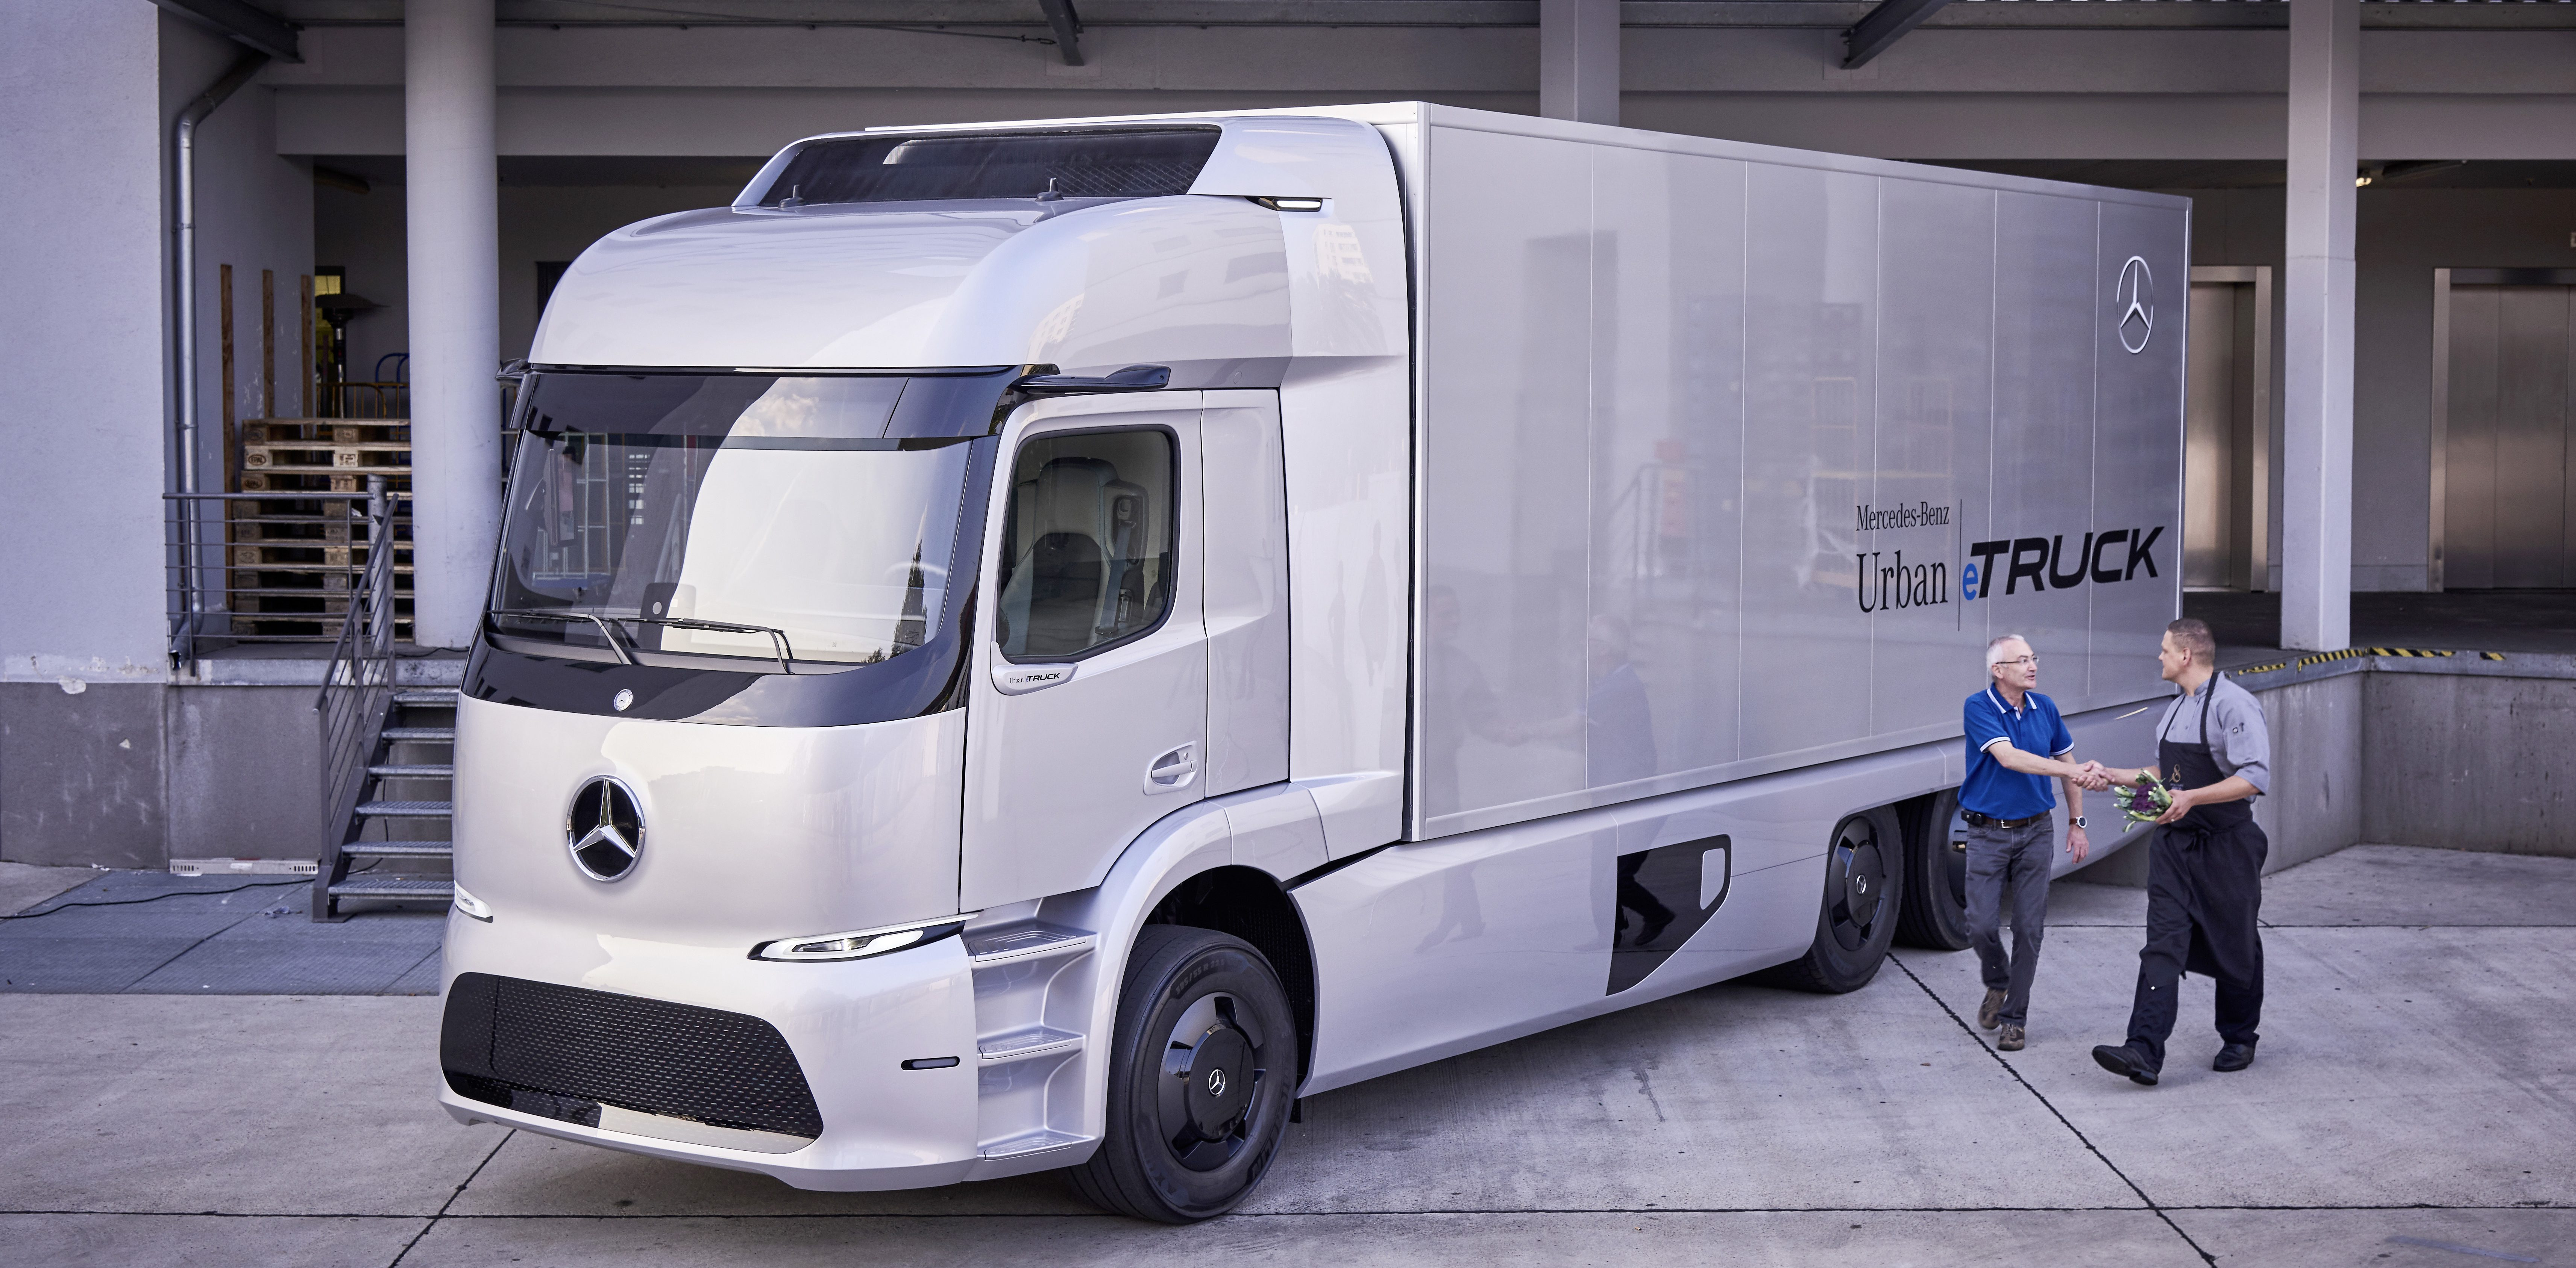 Kleinserie 2017: vollelektrischer Mercedes-Benz Urban eTruck im Kundeneinsatz. Technische Daten: Mercedes-Benz Urban eTruck, Exterieur, Silver Arrow metallic, dreiachsiger Verteiler-Lkw, 2 x 125 kW, 2 x 500 Nm, 3 Module Lithium-Ionen-Batterien, Gesamtkapazität: 212 kWh, elektrisch angetriebene Hinterachse, Reichweite: bis zu 200 km, zul. Gesamtgewicht: 25 t, Zuladung 12,8 t, schwerer Verteilerverkehr, flüsterleise und emissionsfrei, Testflotte ; Small series 2017: all-electric Mercedes-Benz Urban eTruck for customer trial. Technical Data: Mercedes-Benz Urban eTruck, Exterior, silver arrow metallic, three-axle short-radius distribution truck, 2 x 125 kW, 2 x 500 Nm, 3 modules of lithium-ion batteries, total capacity: 212 kWh, electrically driven rear axle, operating range: up to 200 km, permissible gross vehicle weight: 25 t, heavy-duty truck, zero emissions, quiet as a whisper and with a payload of 12.8 t, test fleet.;